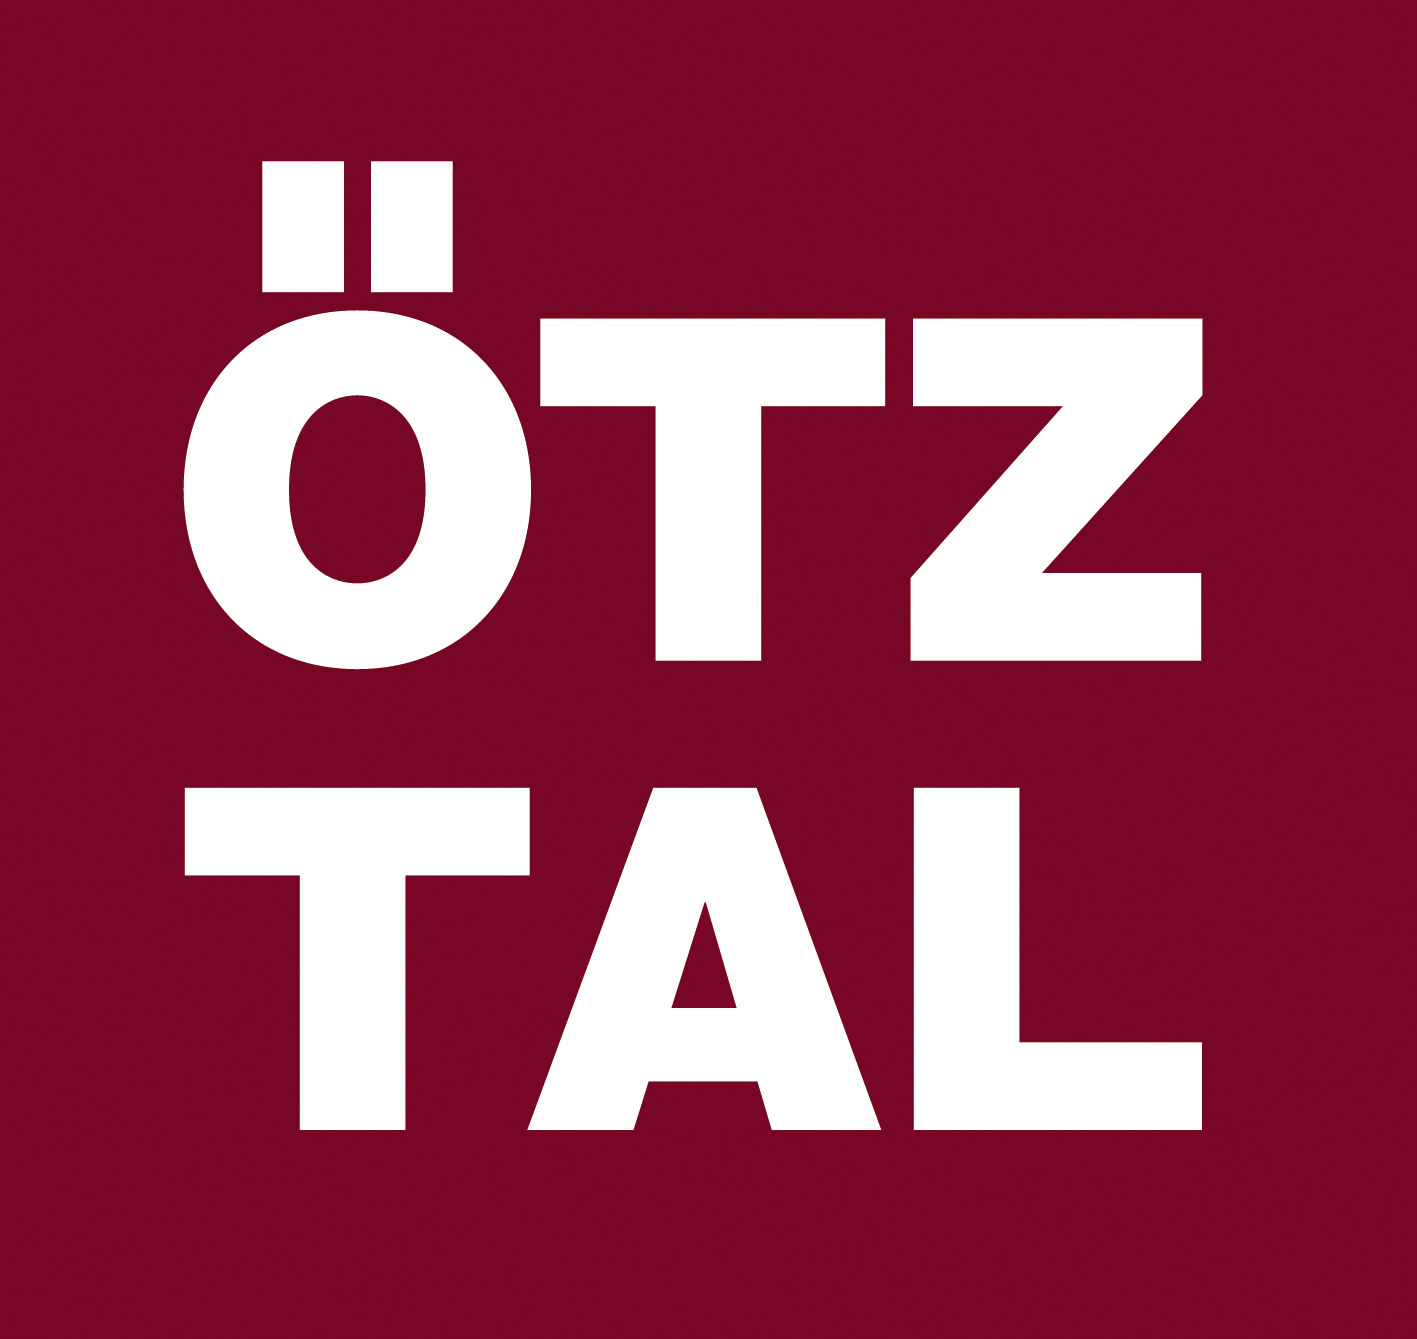 Oetztal: Strong partner of the AREA 47